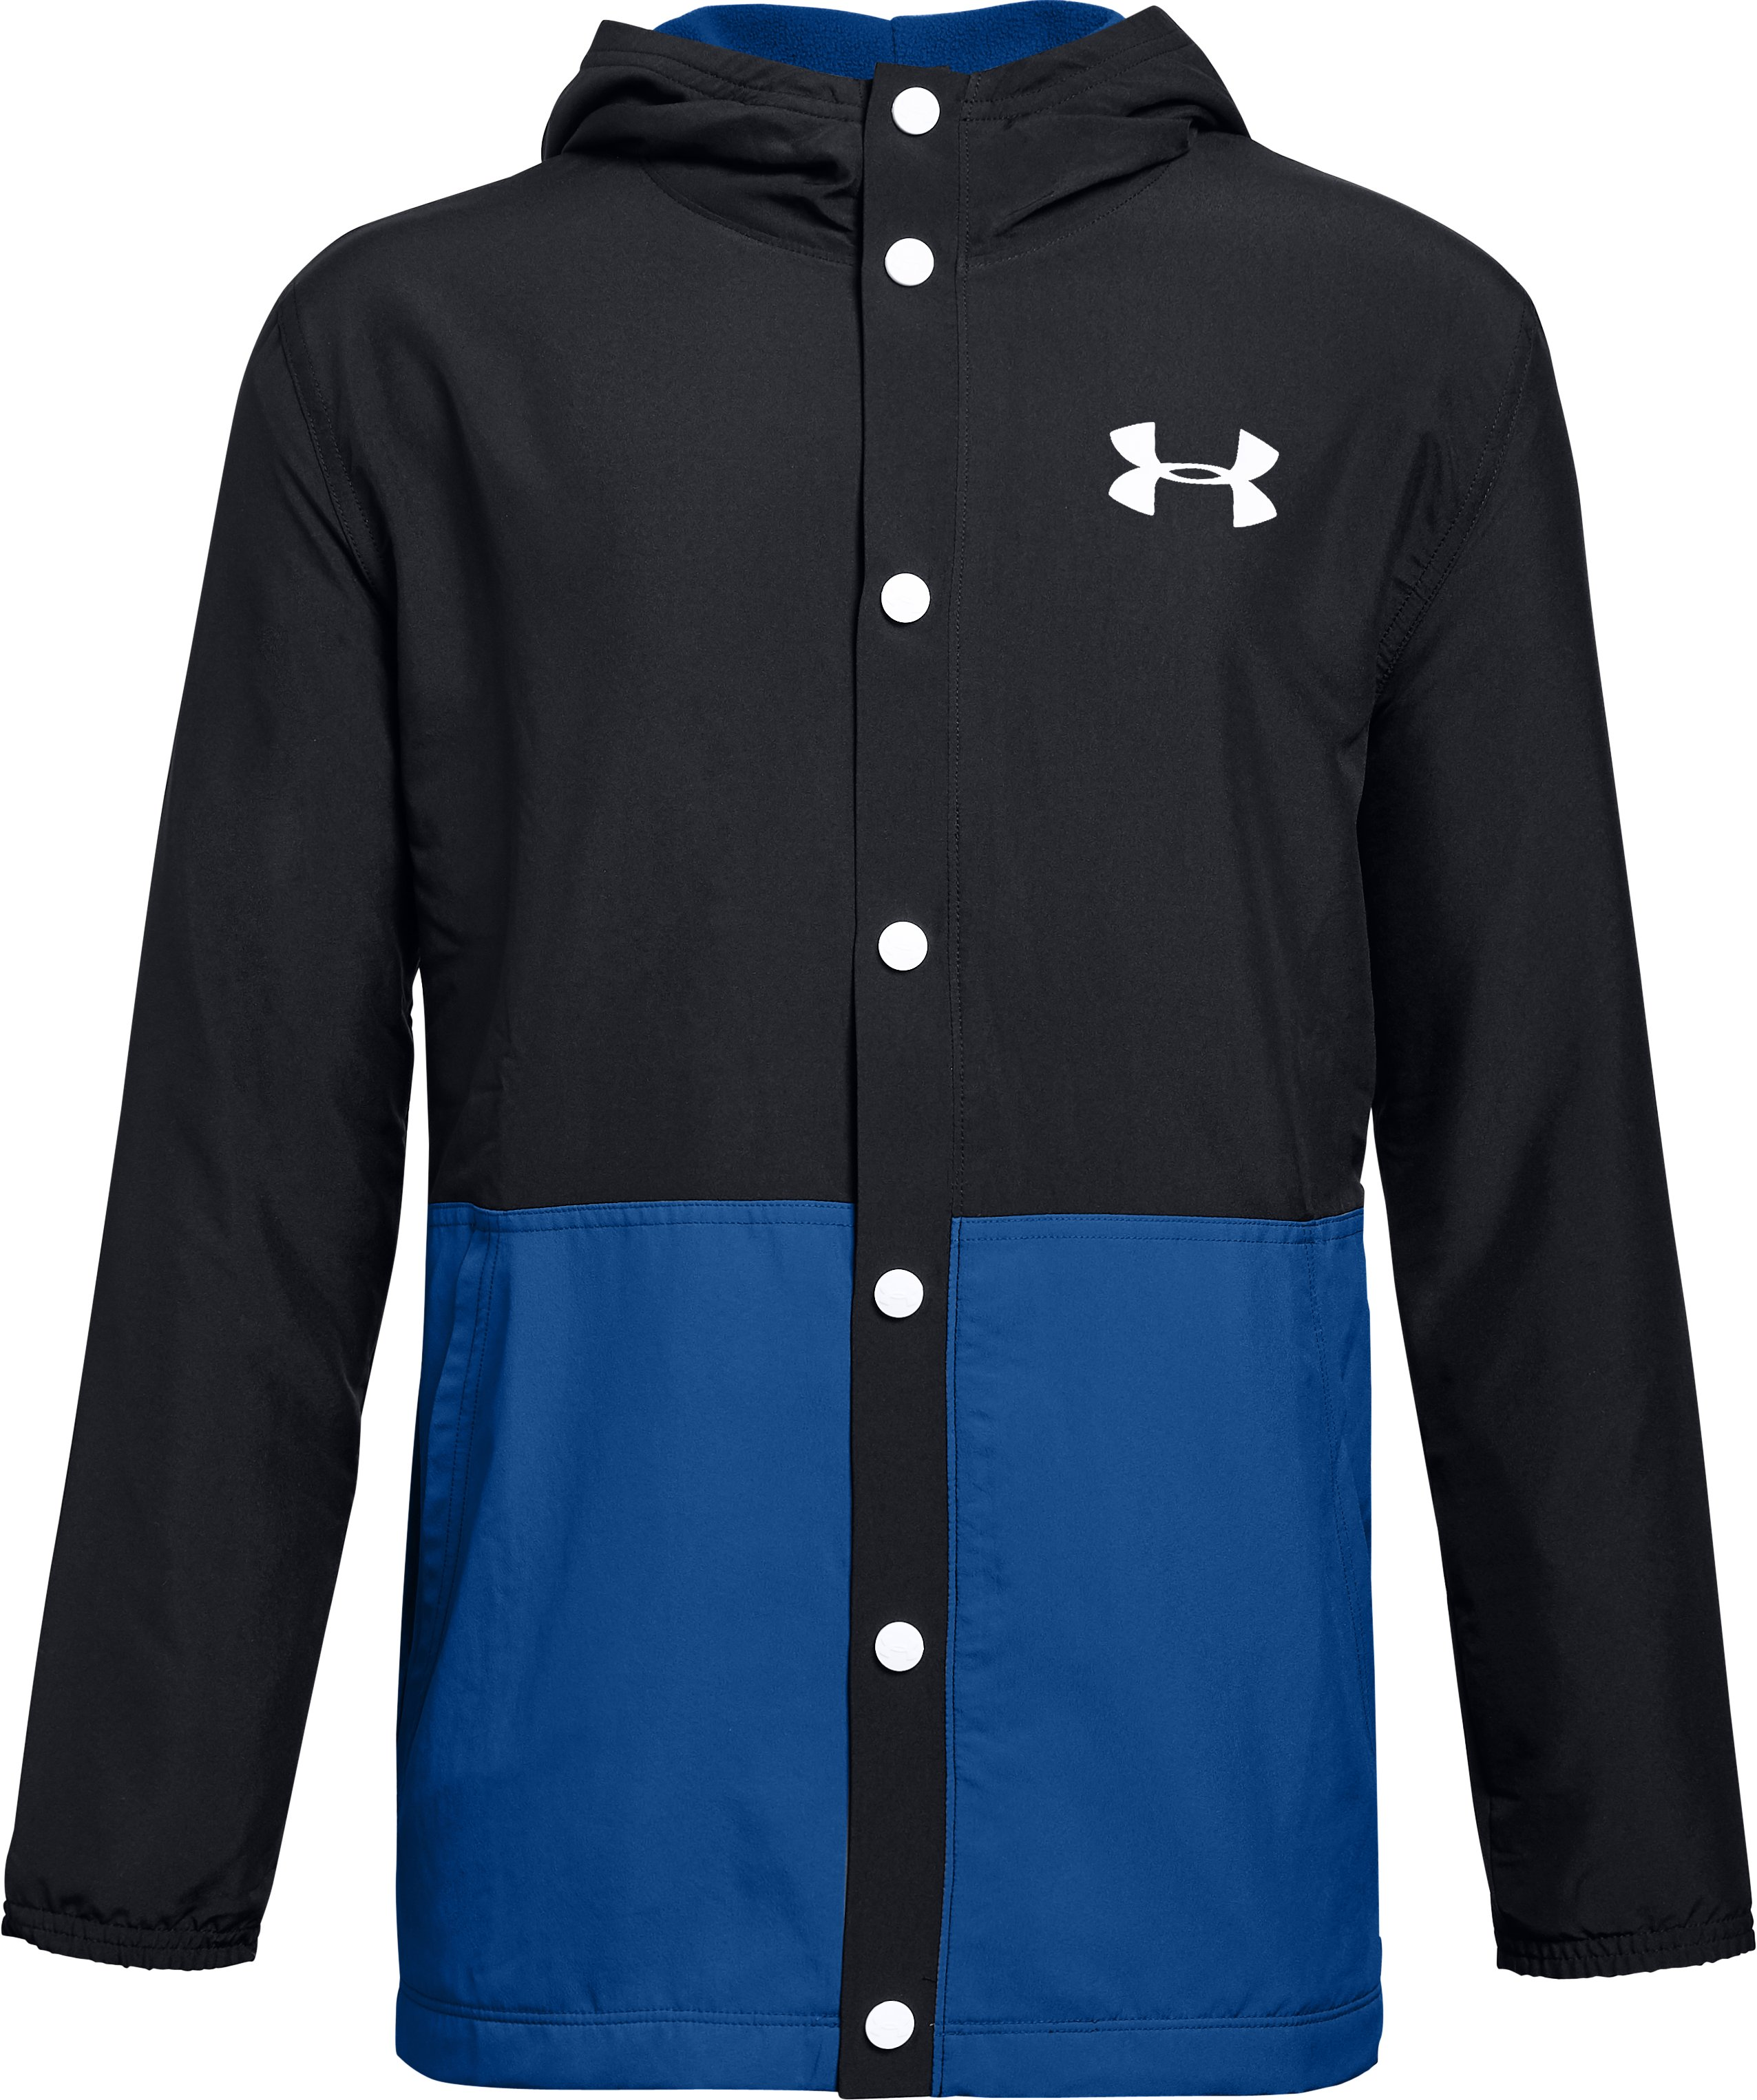 Phenom Jacket, Black , zoomed